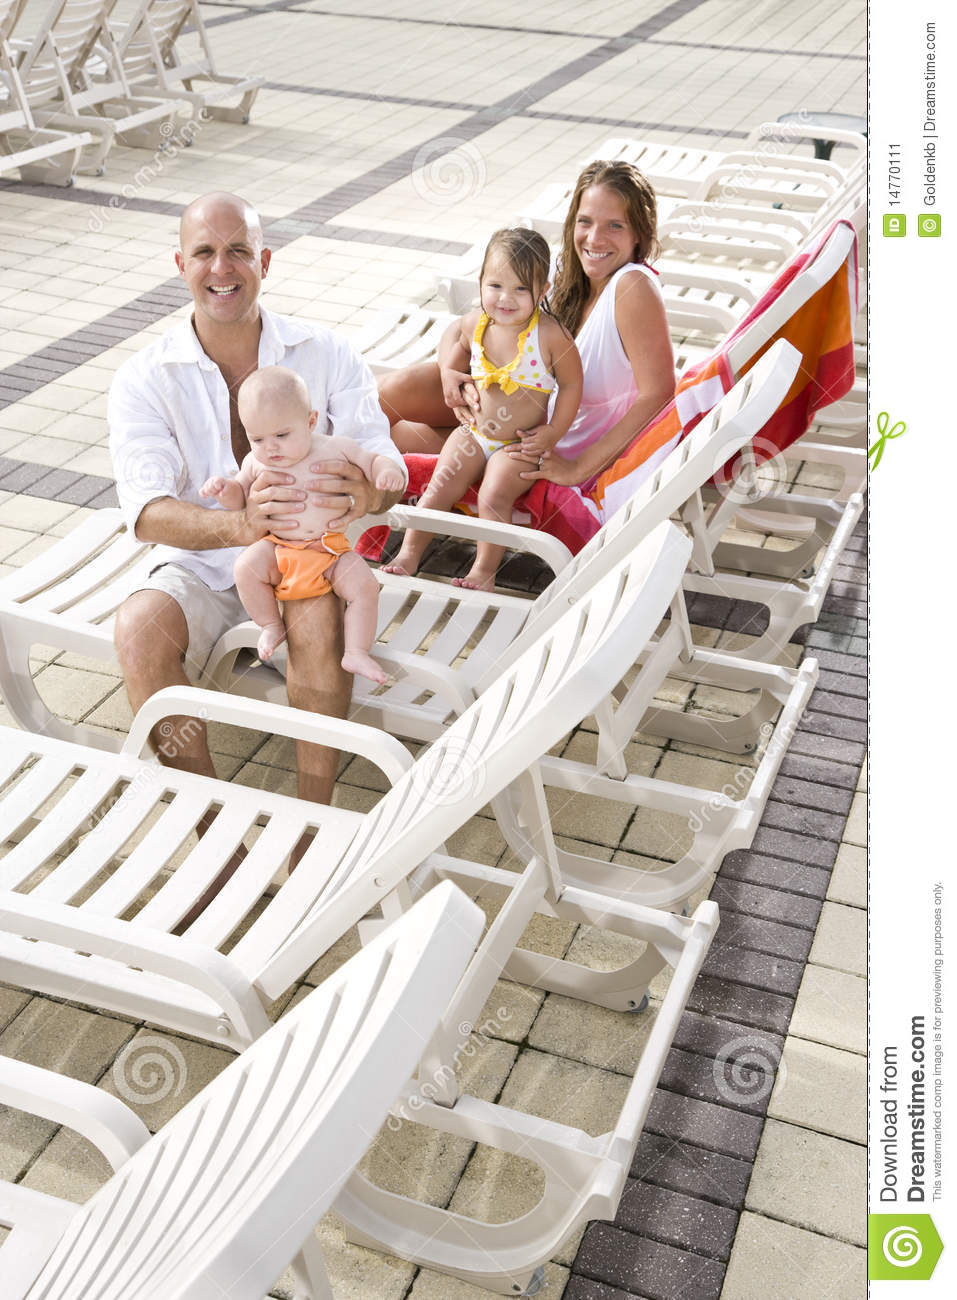 family vacation relax on pool deck lounge chairs stock image image 14770111. Black Bedroom Furniture Sets. Home Design Ideas